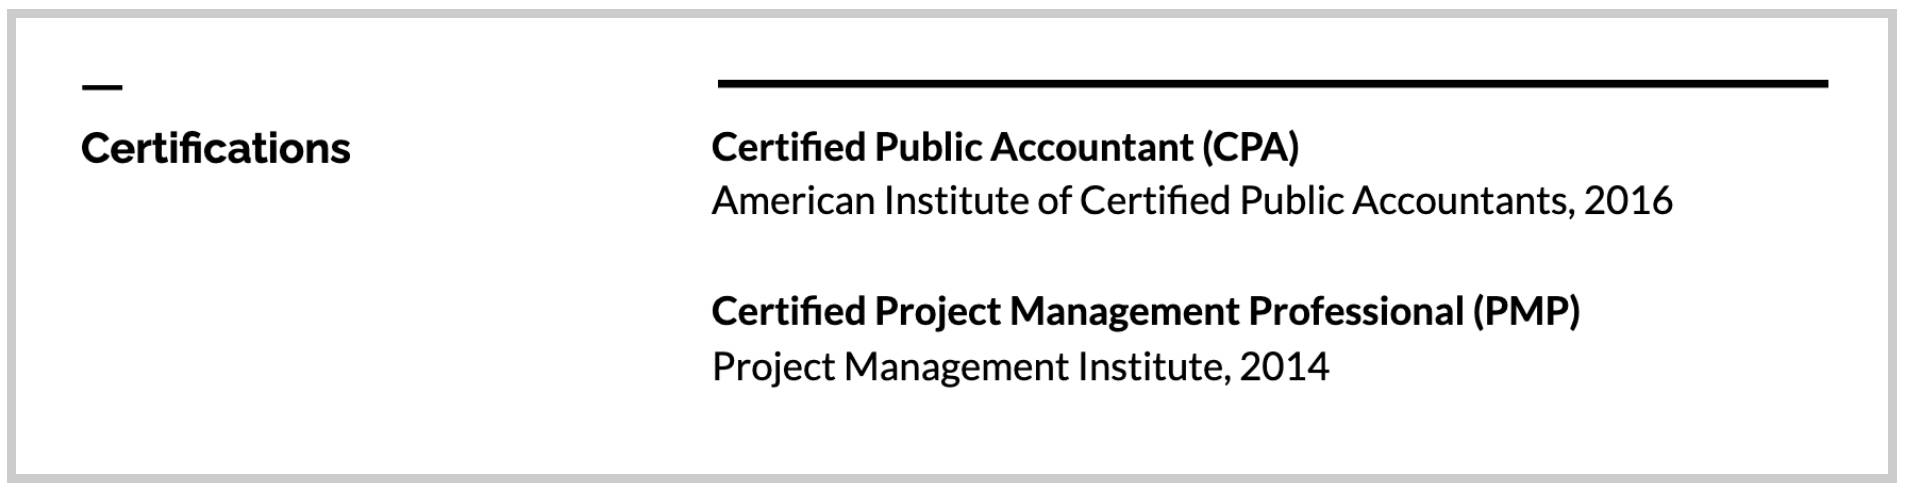 Certification listed in its own section example